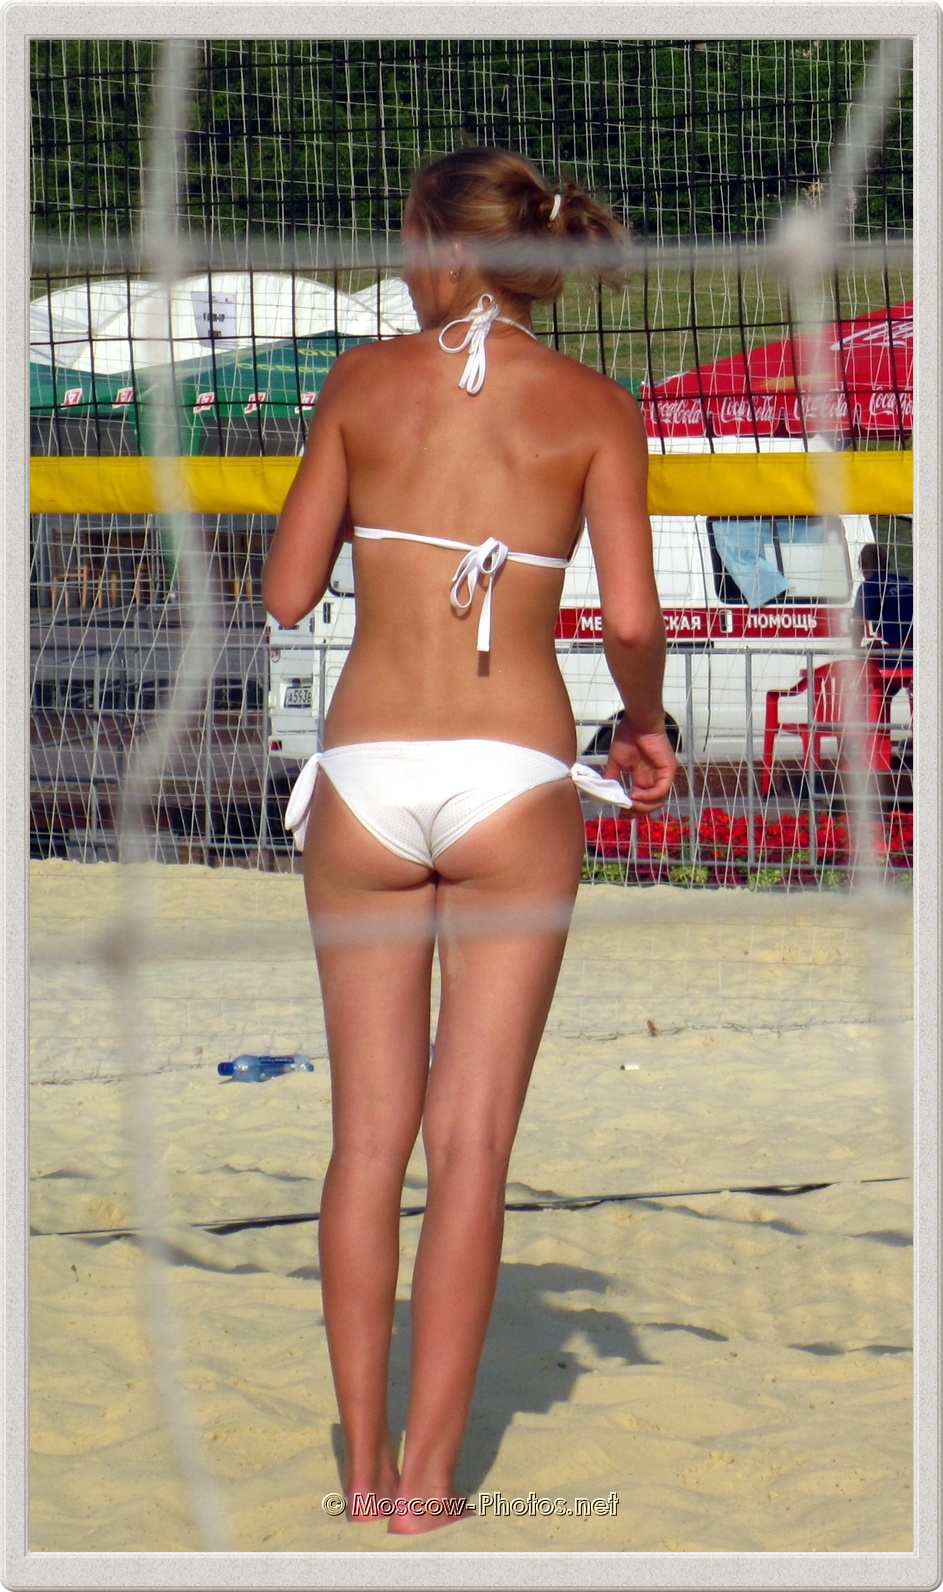 Barefoot Volleyball Girl and Hot Moscow Summer